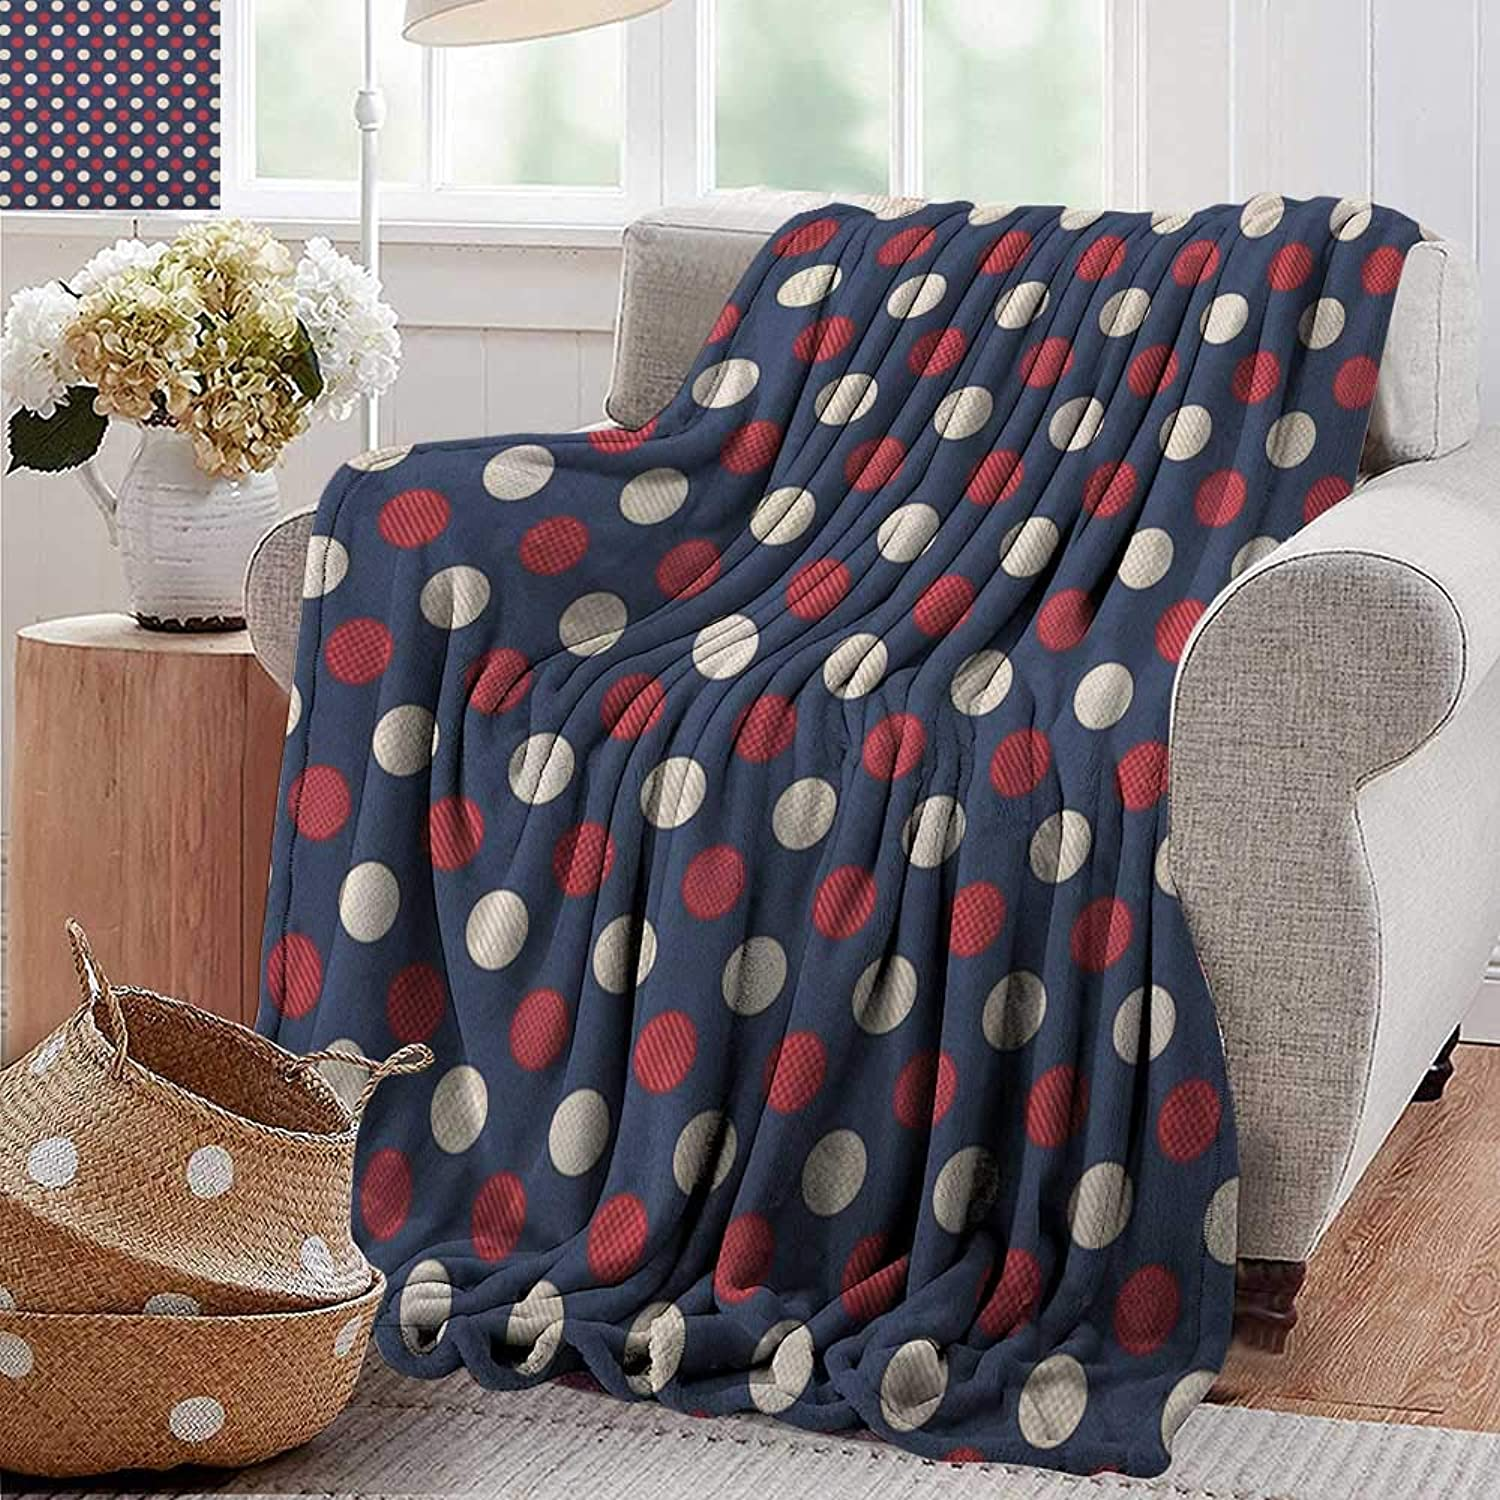 XavieraDoherty Weighted Blanket Adult,Abstract,Retro Large Circles with Inner Stripes Round Spots Kids Nursery, Cream Dark Coral Night bluee,Soft, Fuzzy, Cozy, Lightweight Blankets 35 x60